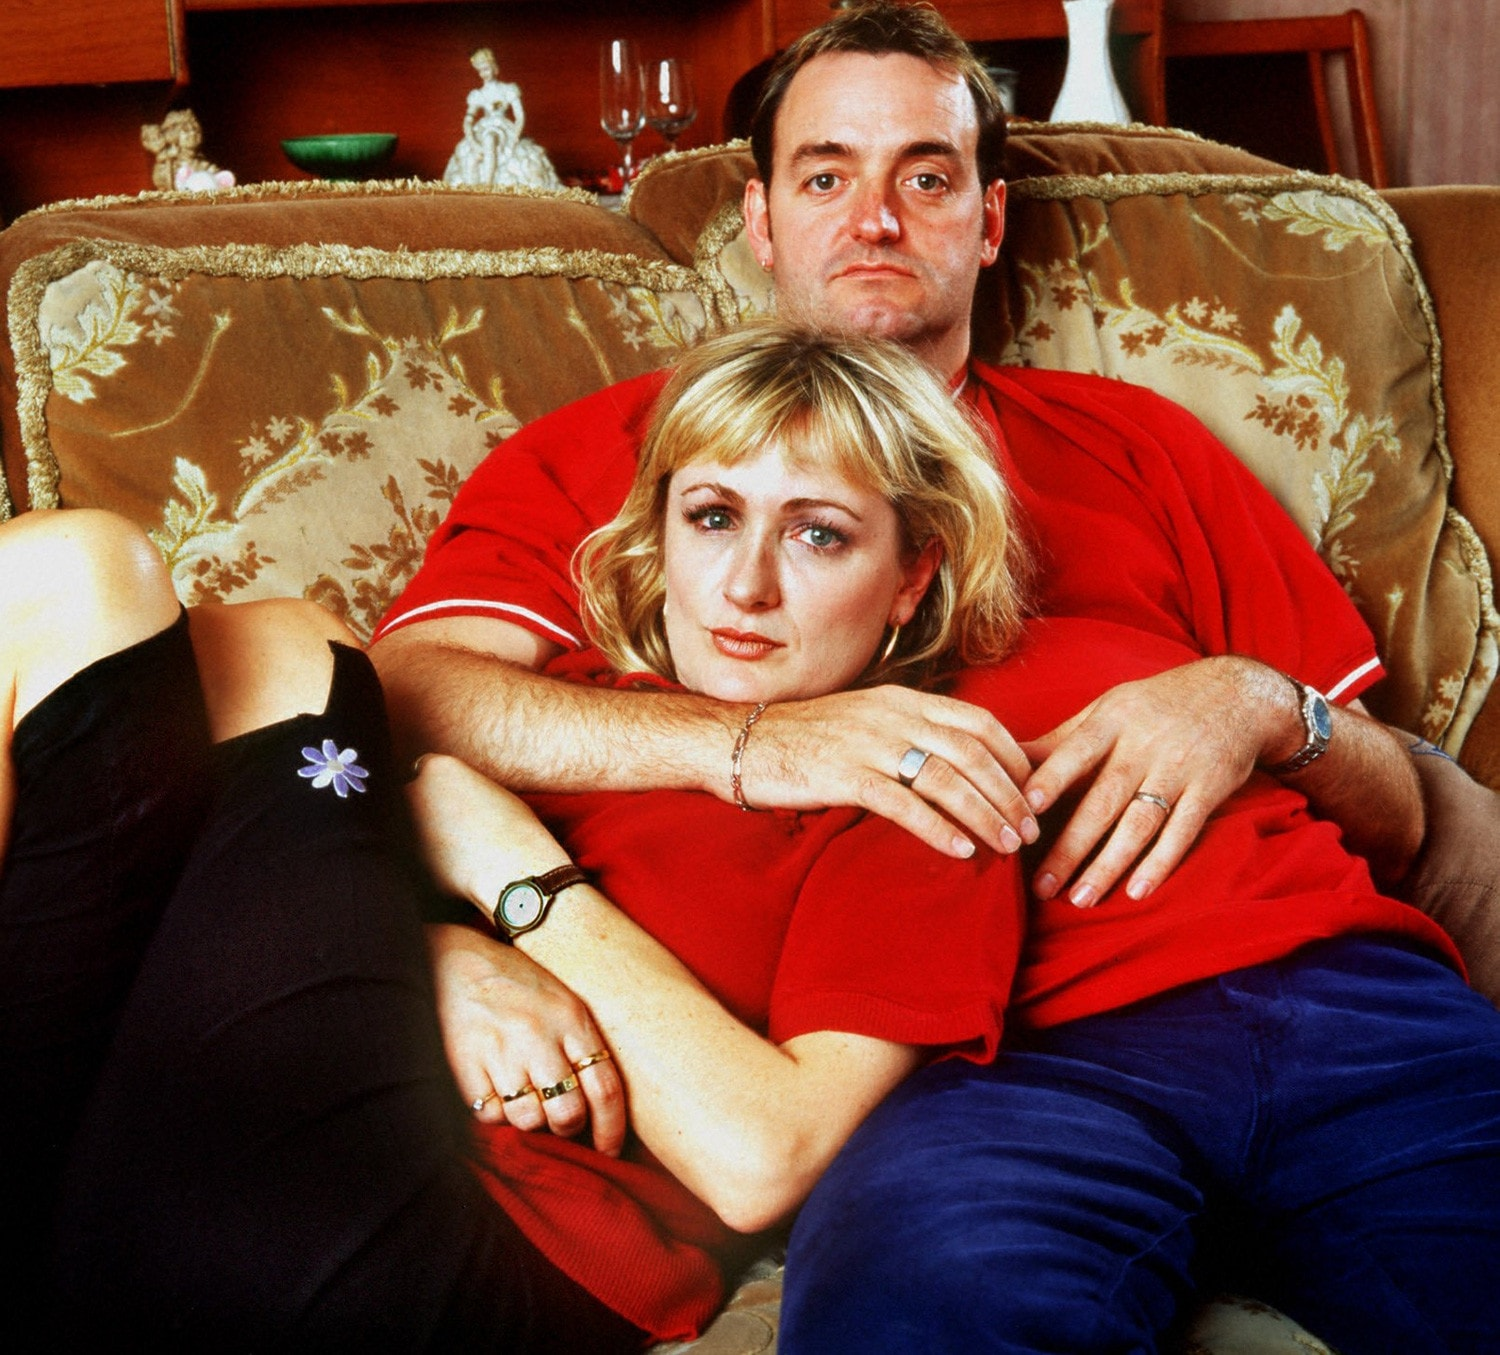 Caroline Aherne Wallpaper